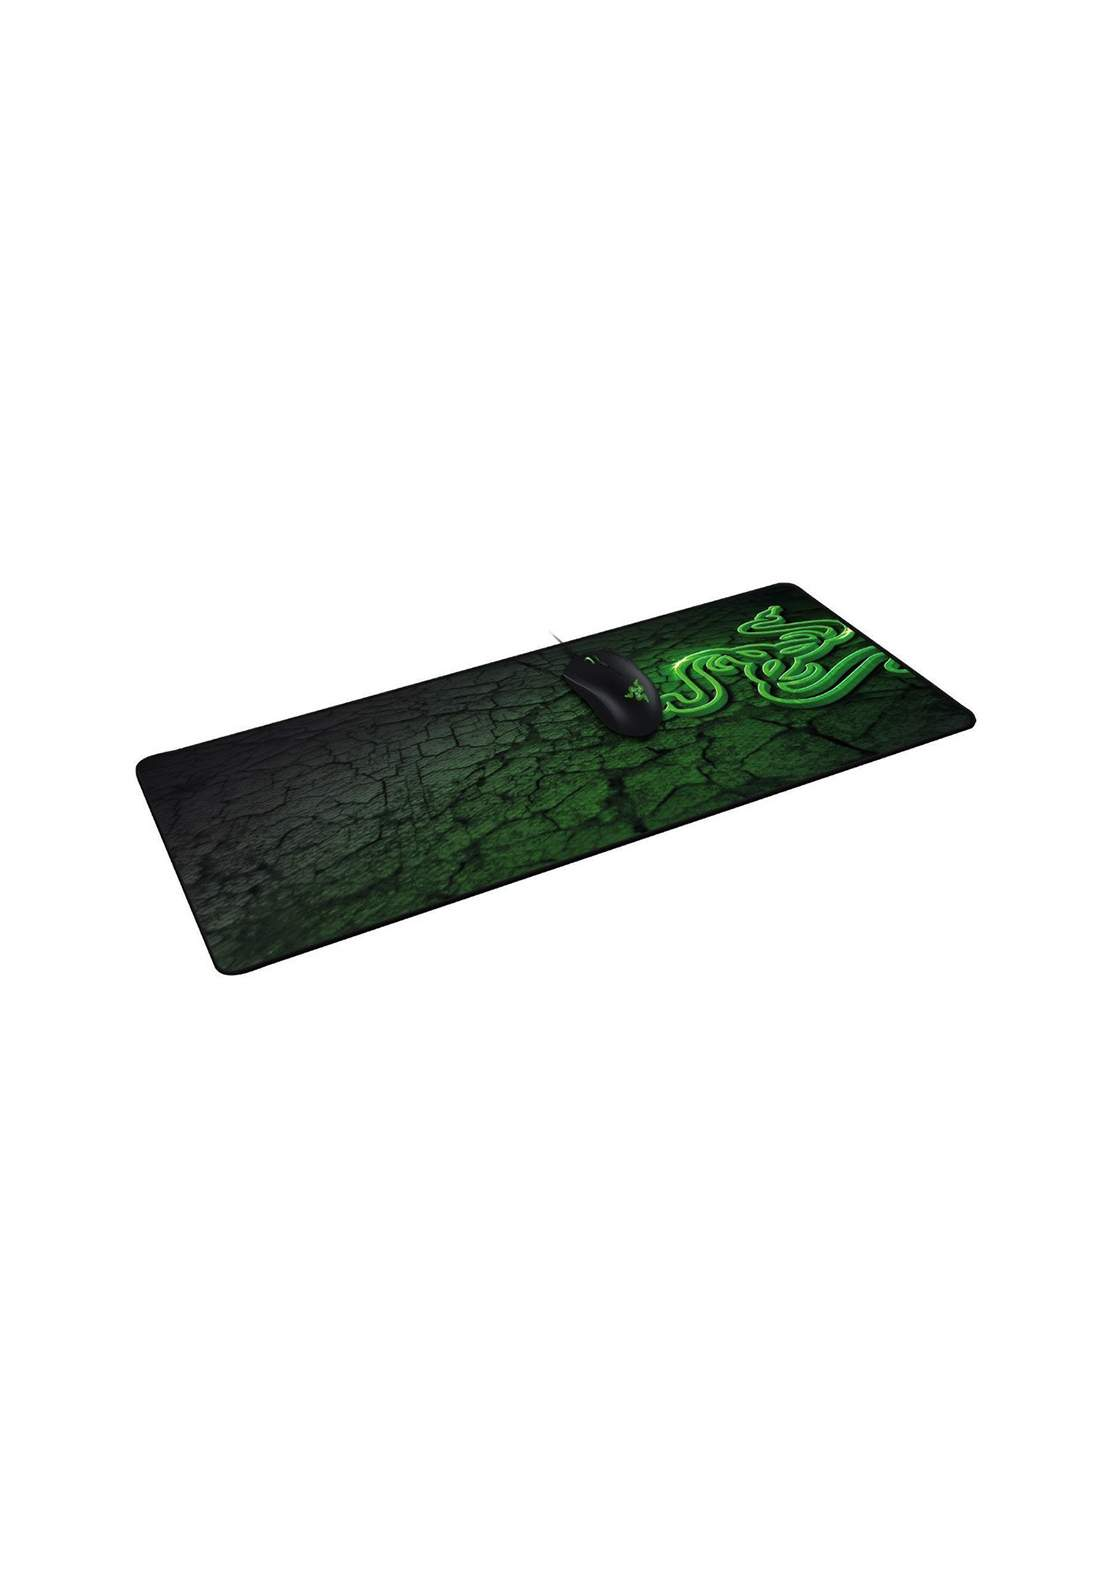 Razer Goliathus Control Extended Gaming Mouse Pad